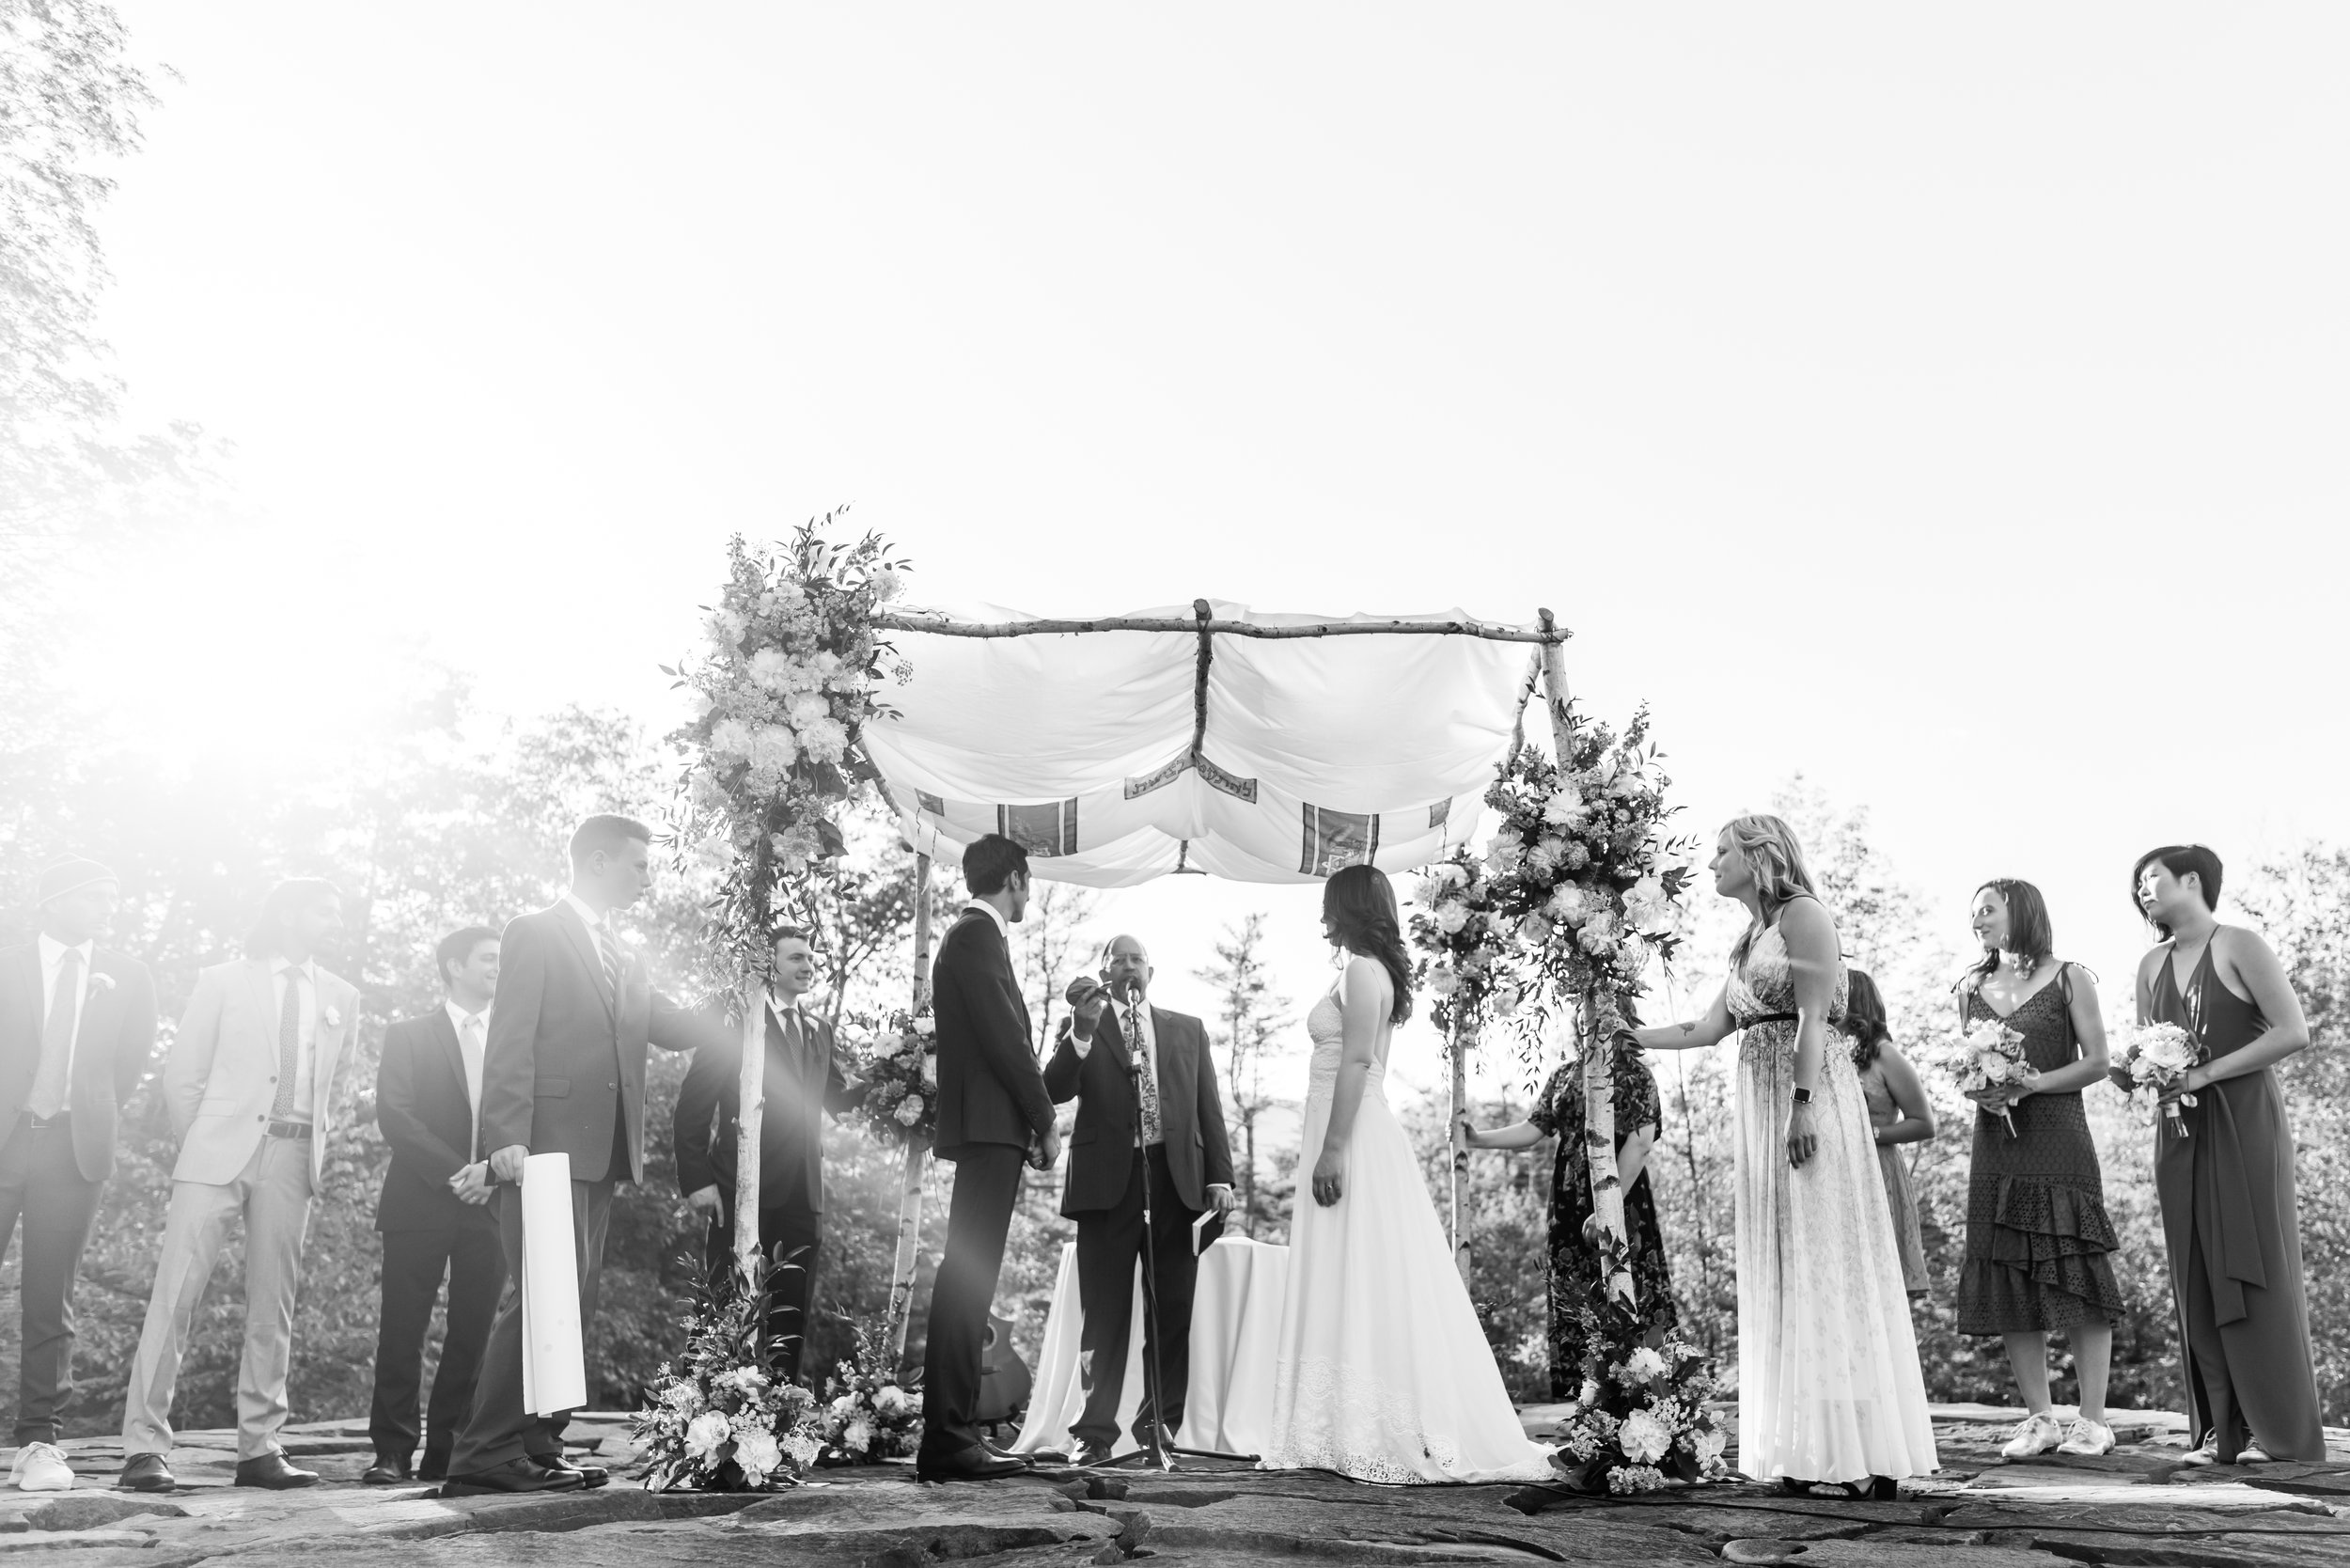 Stefy Hilmer Photograhy- wedding ceremony at Opus 40 in Saugerties NY.jpg